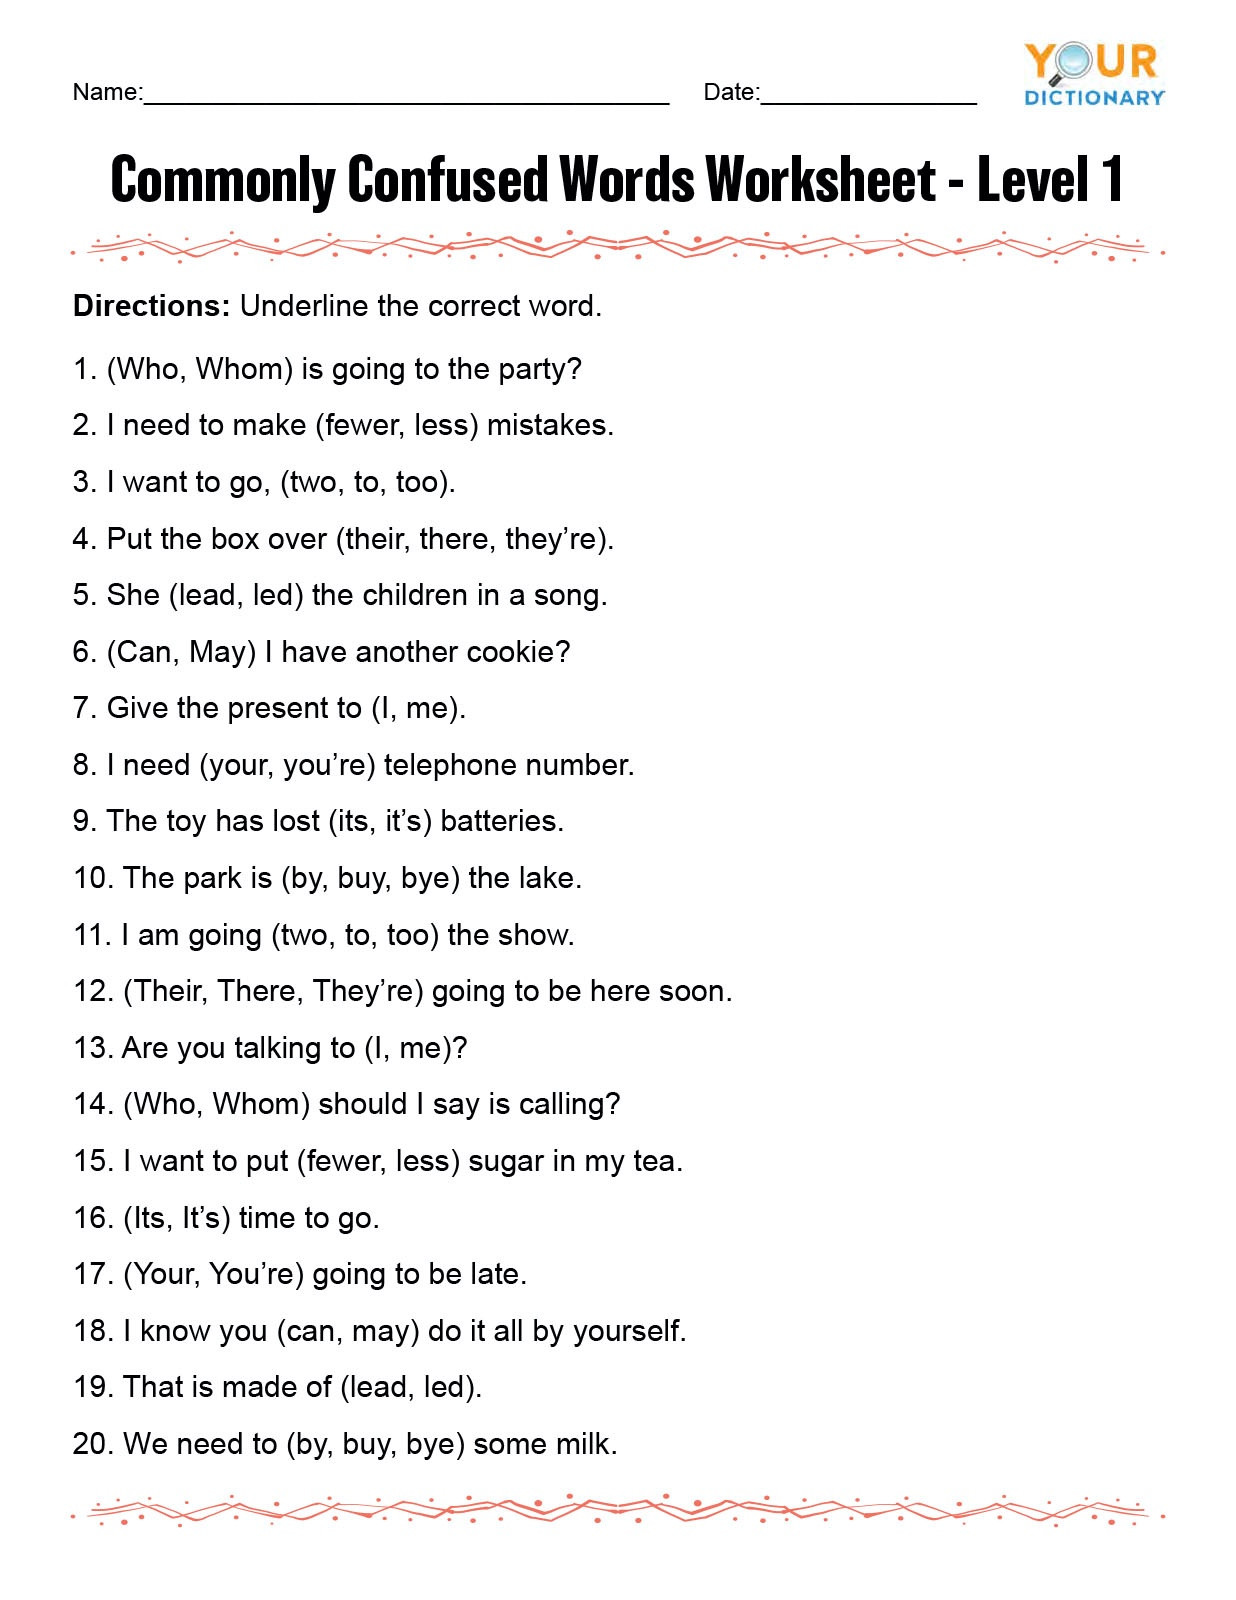 Homonym Worksheets Middle School Monly Confused Words Worksheet